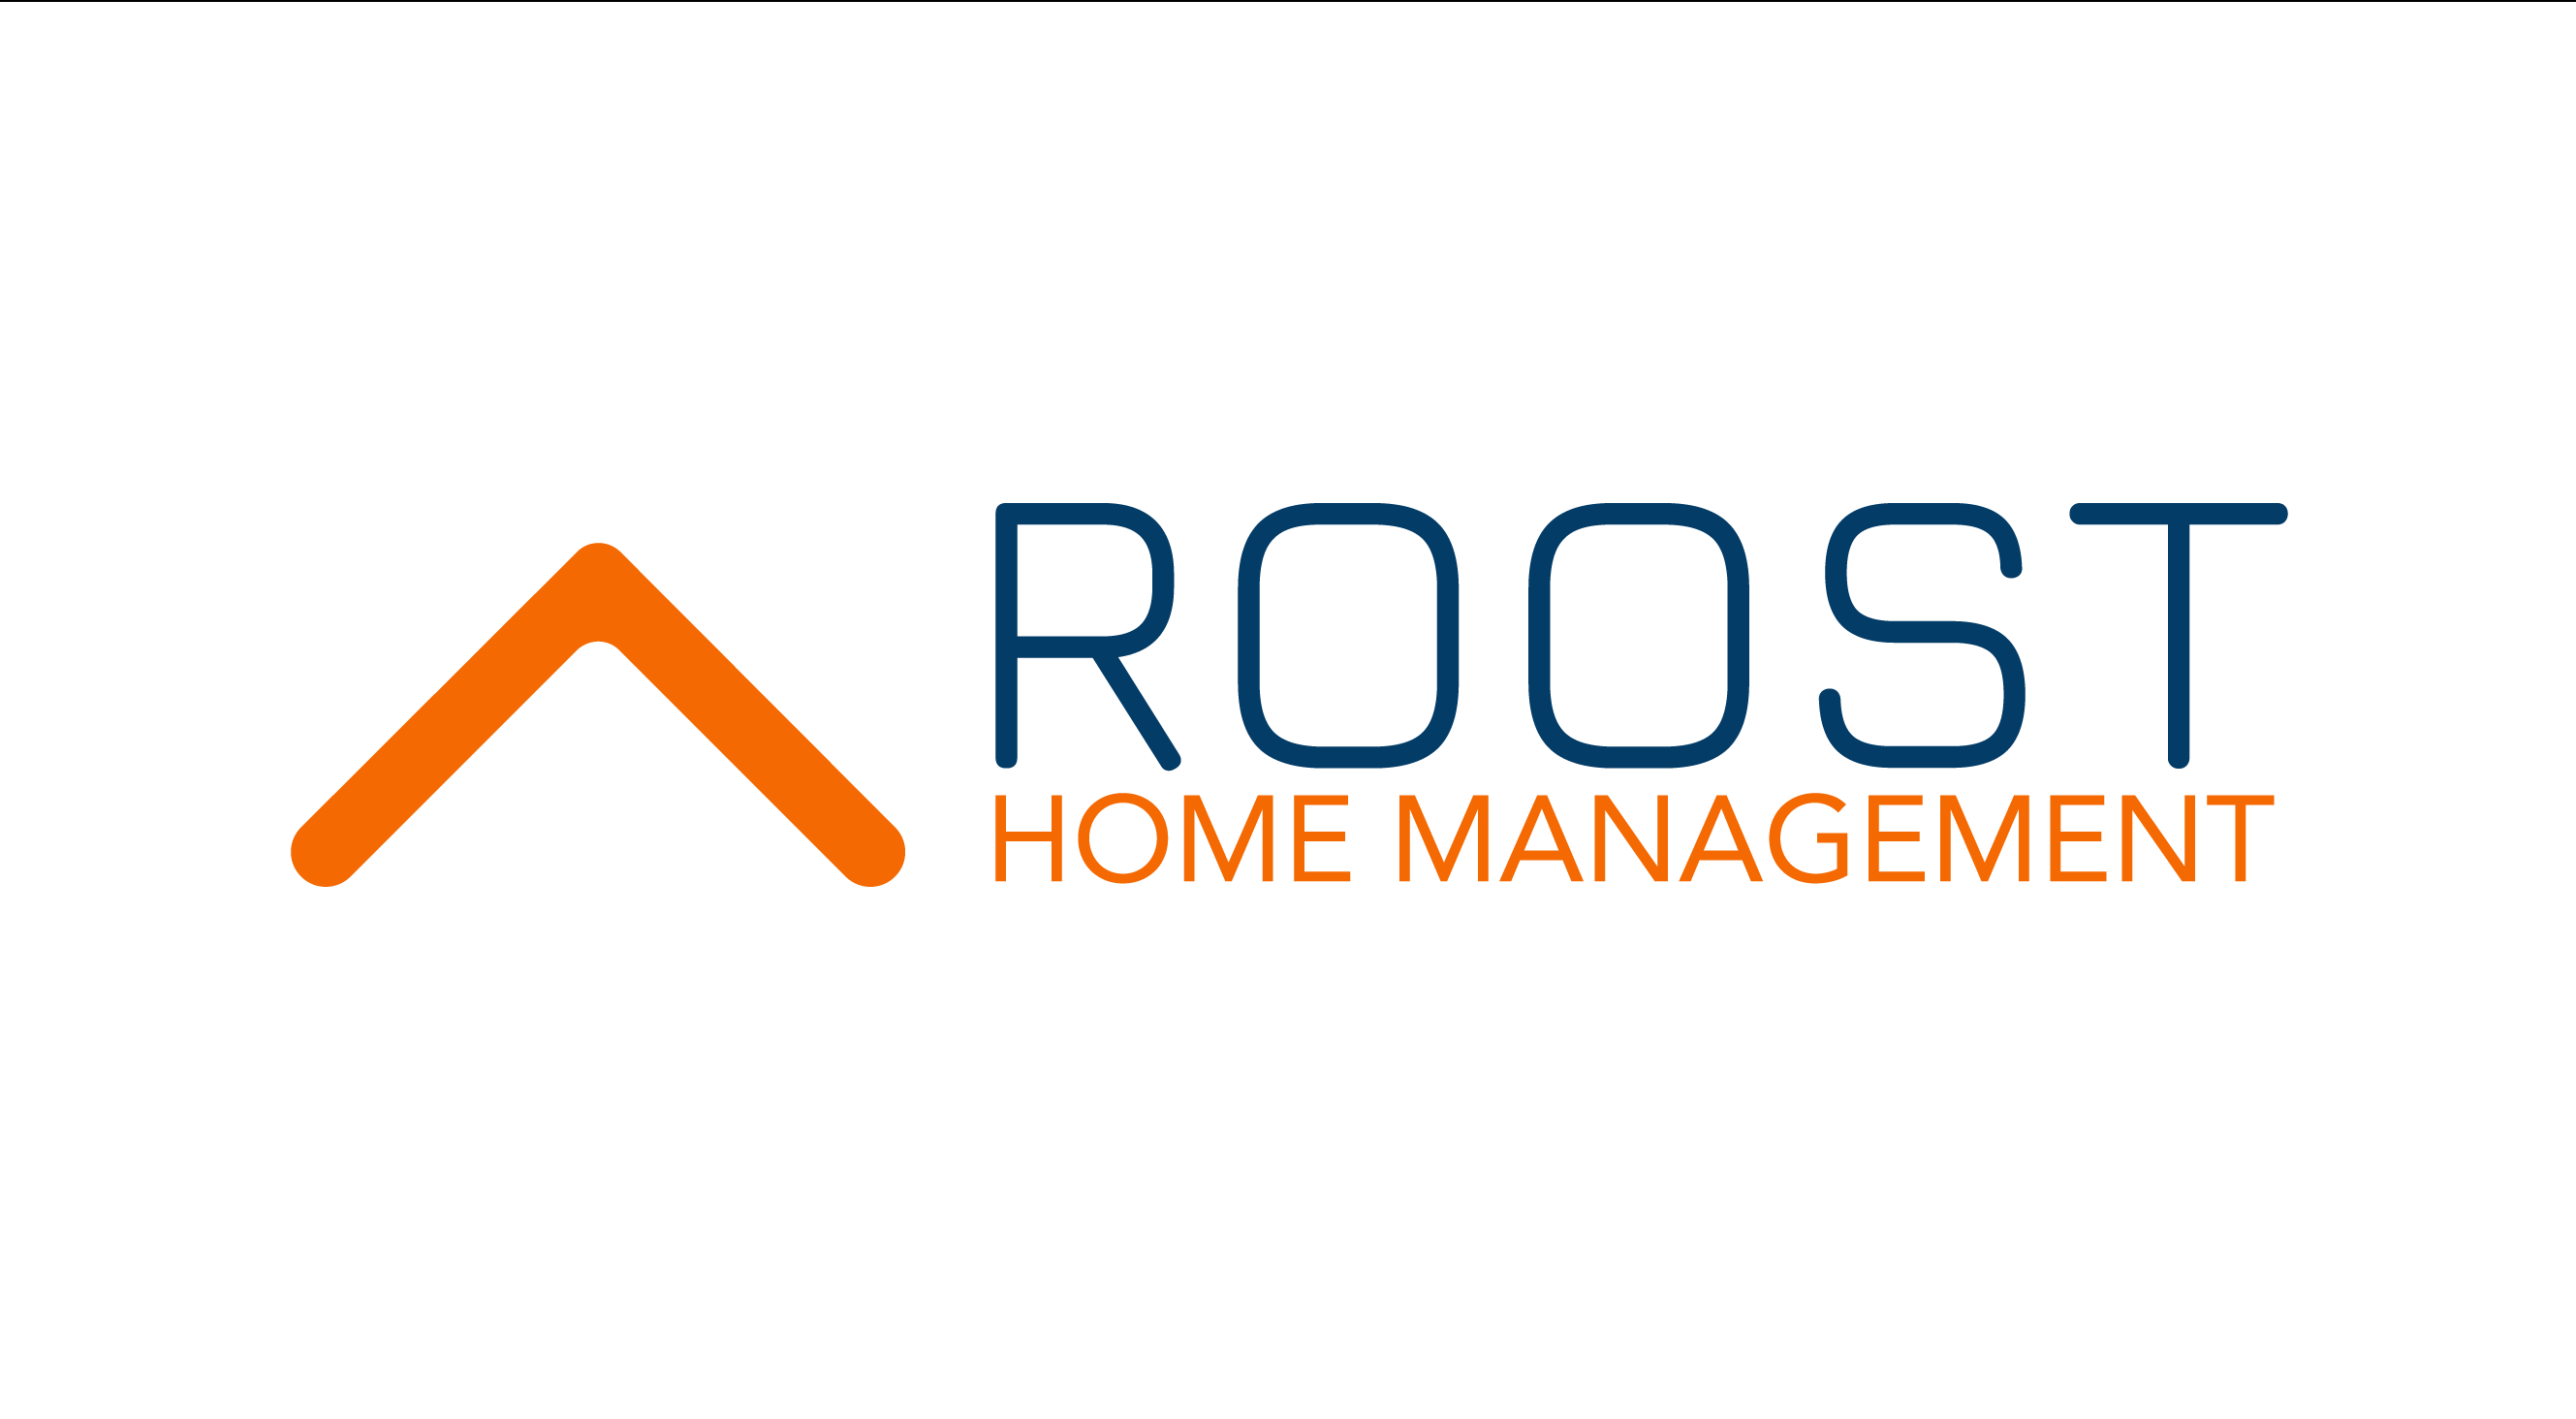 Roost Home Management